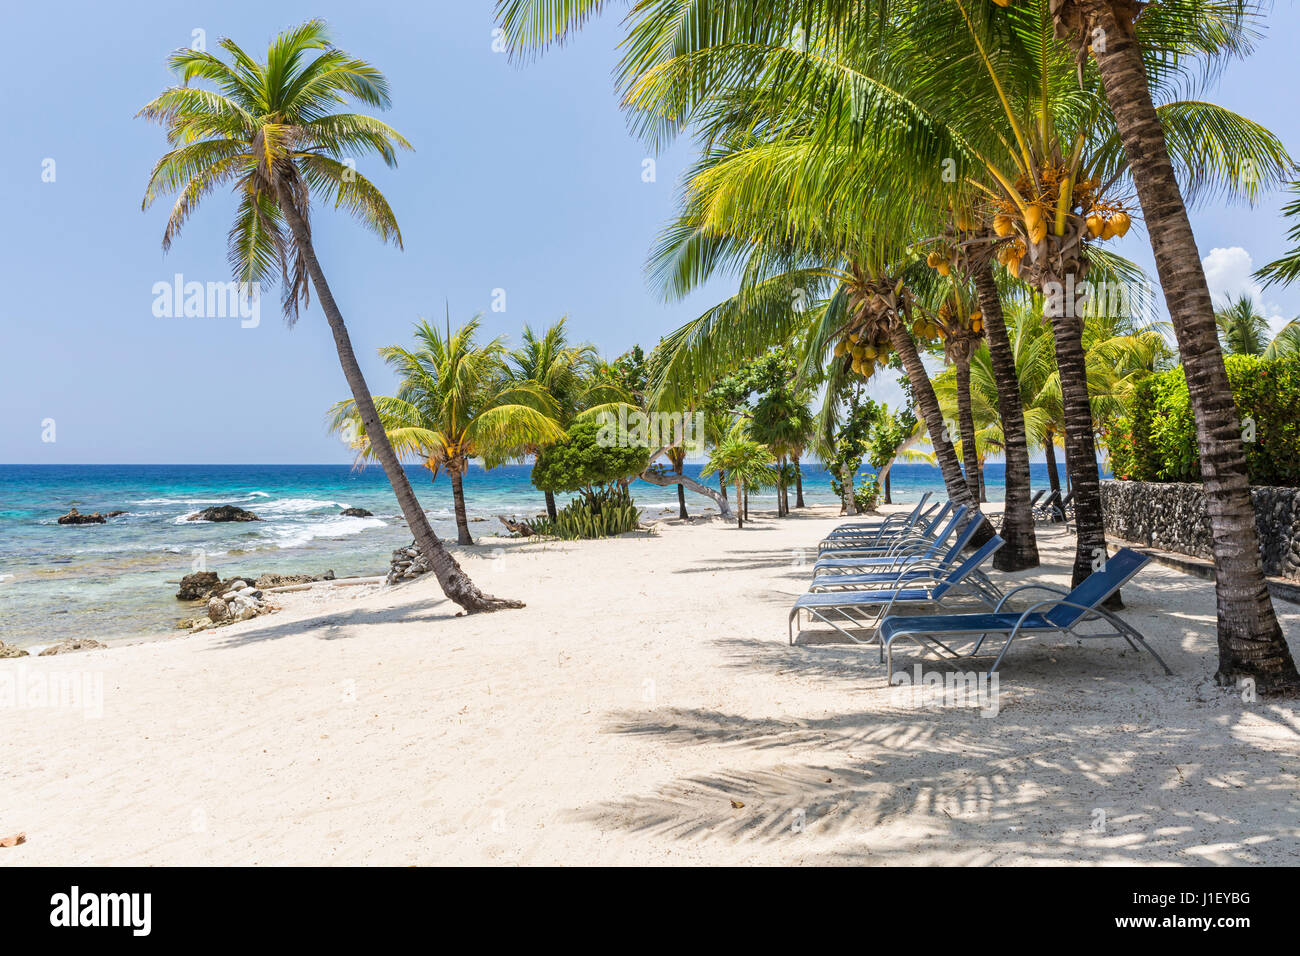 Coconut palm trees and beach chairs line the beautiful sandy beach at Lighthouse Point near the Meridian Resort Stock Photo